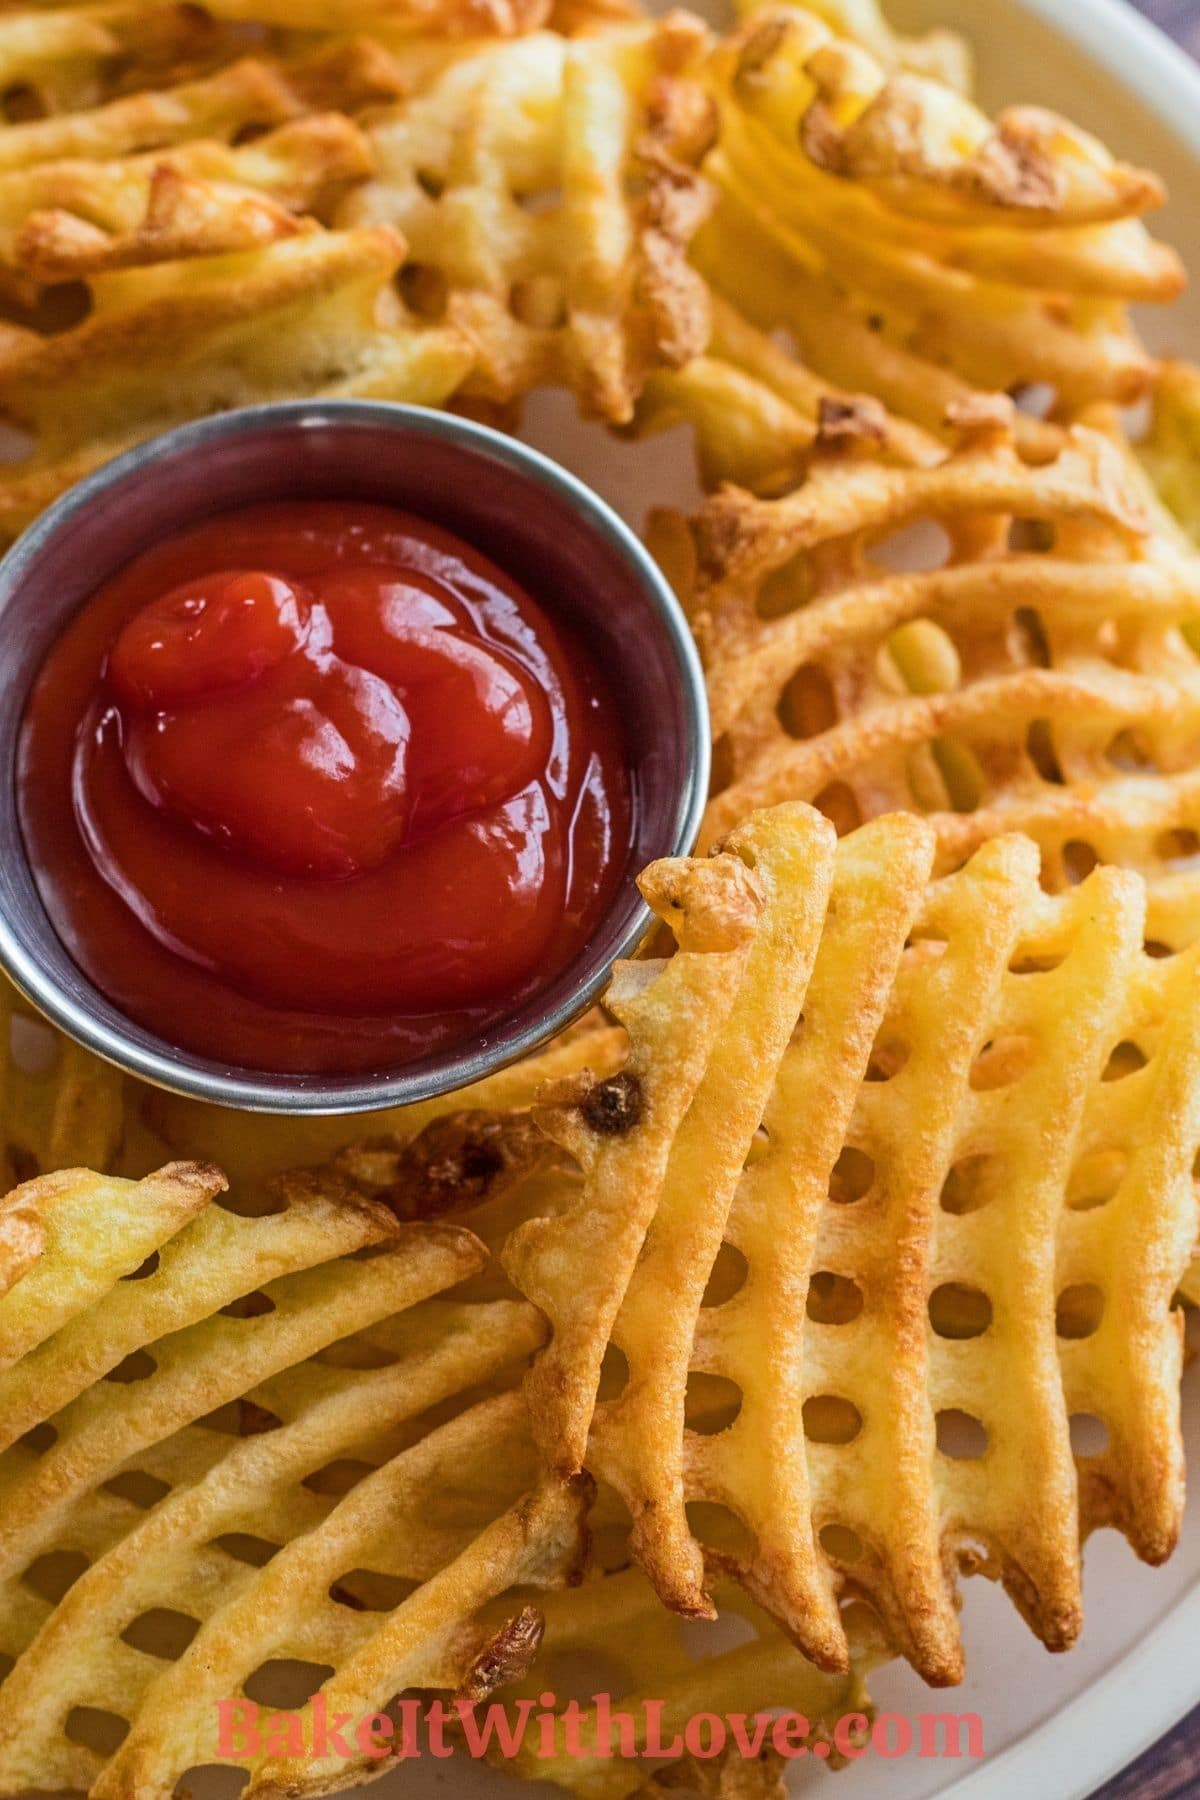 Waffle Fries cooked in an air fryer and served on plate with ketchup.